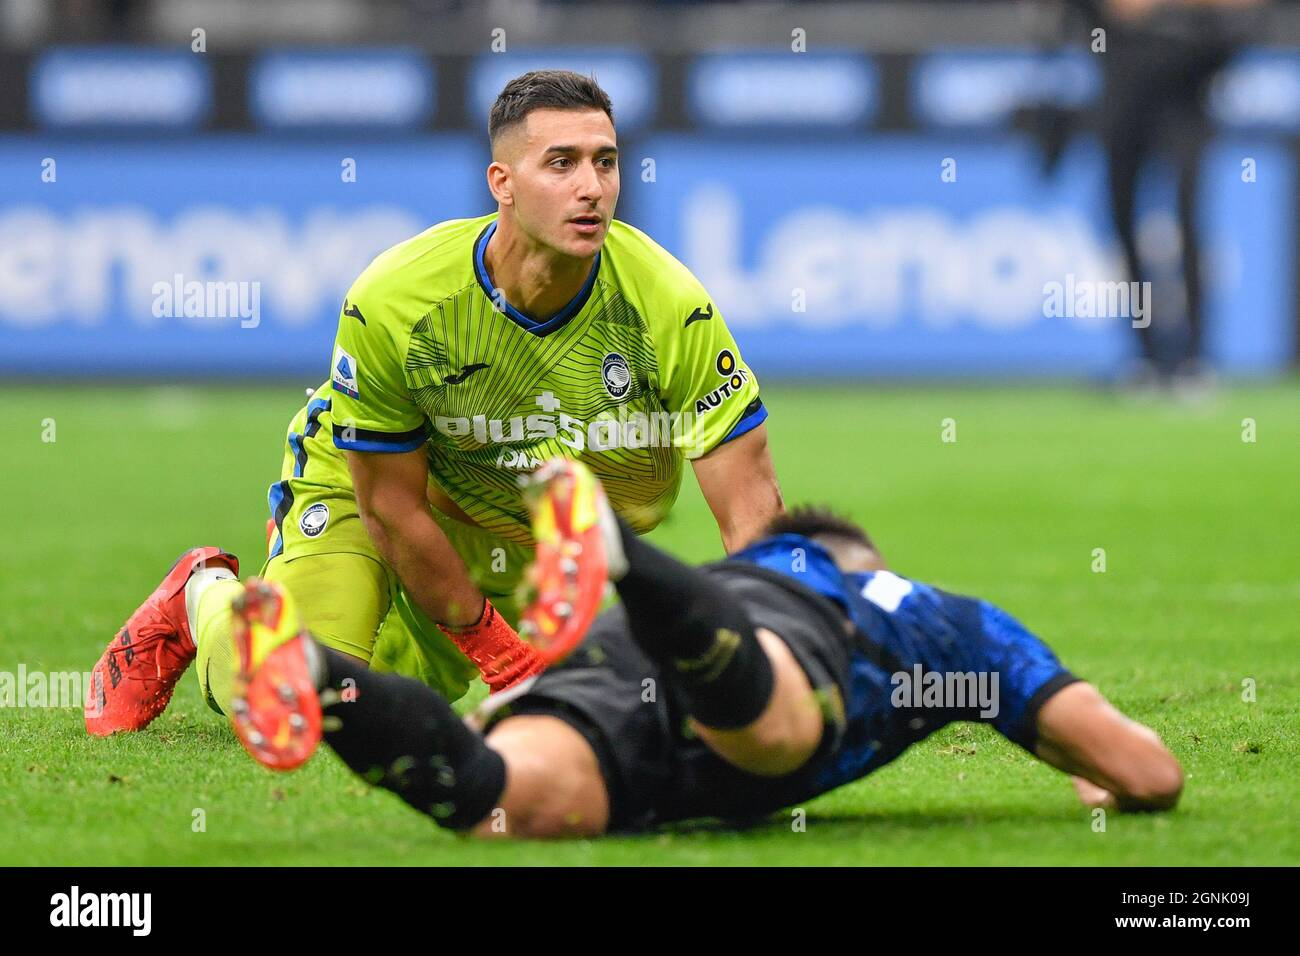 Juan Musso High Resolution Stock Photography and Images - Alamy